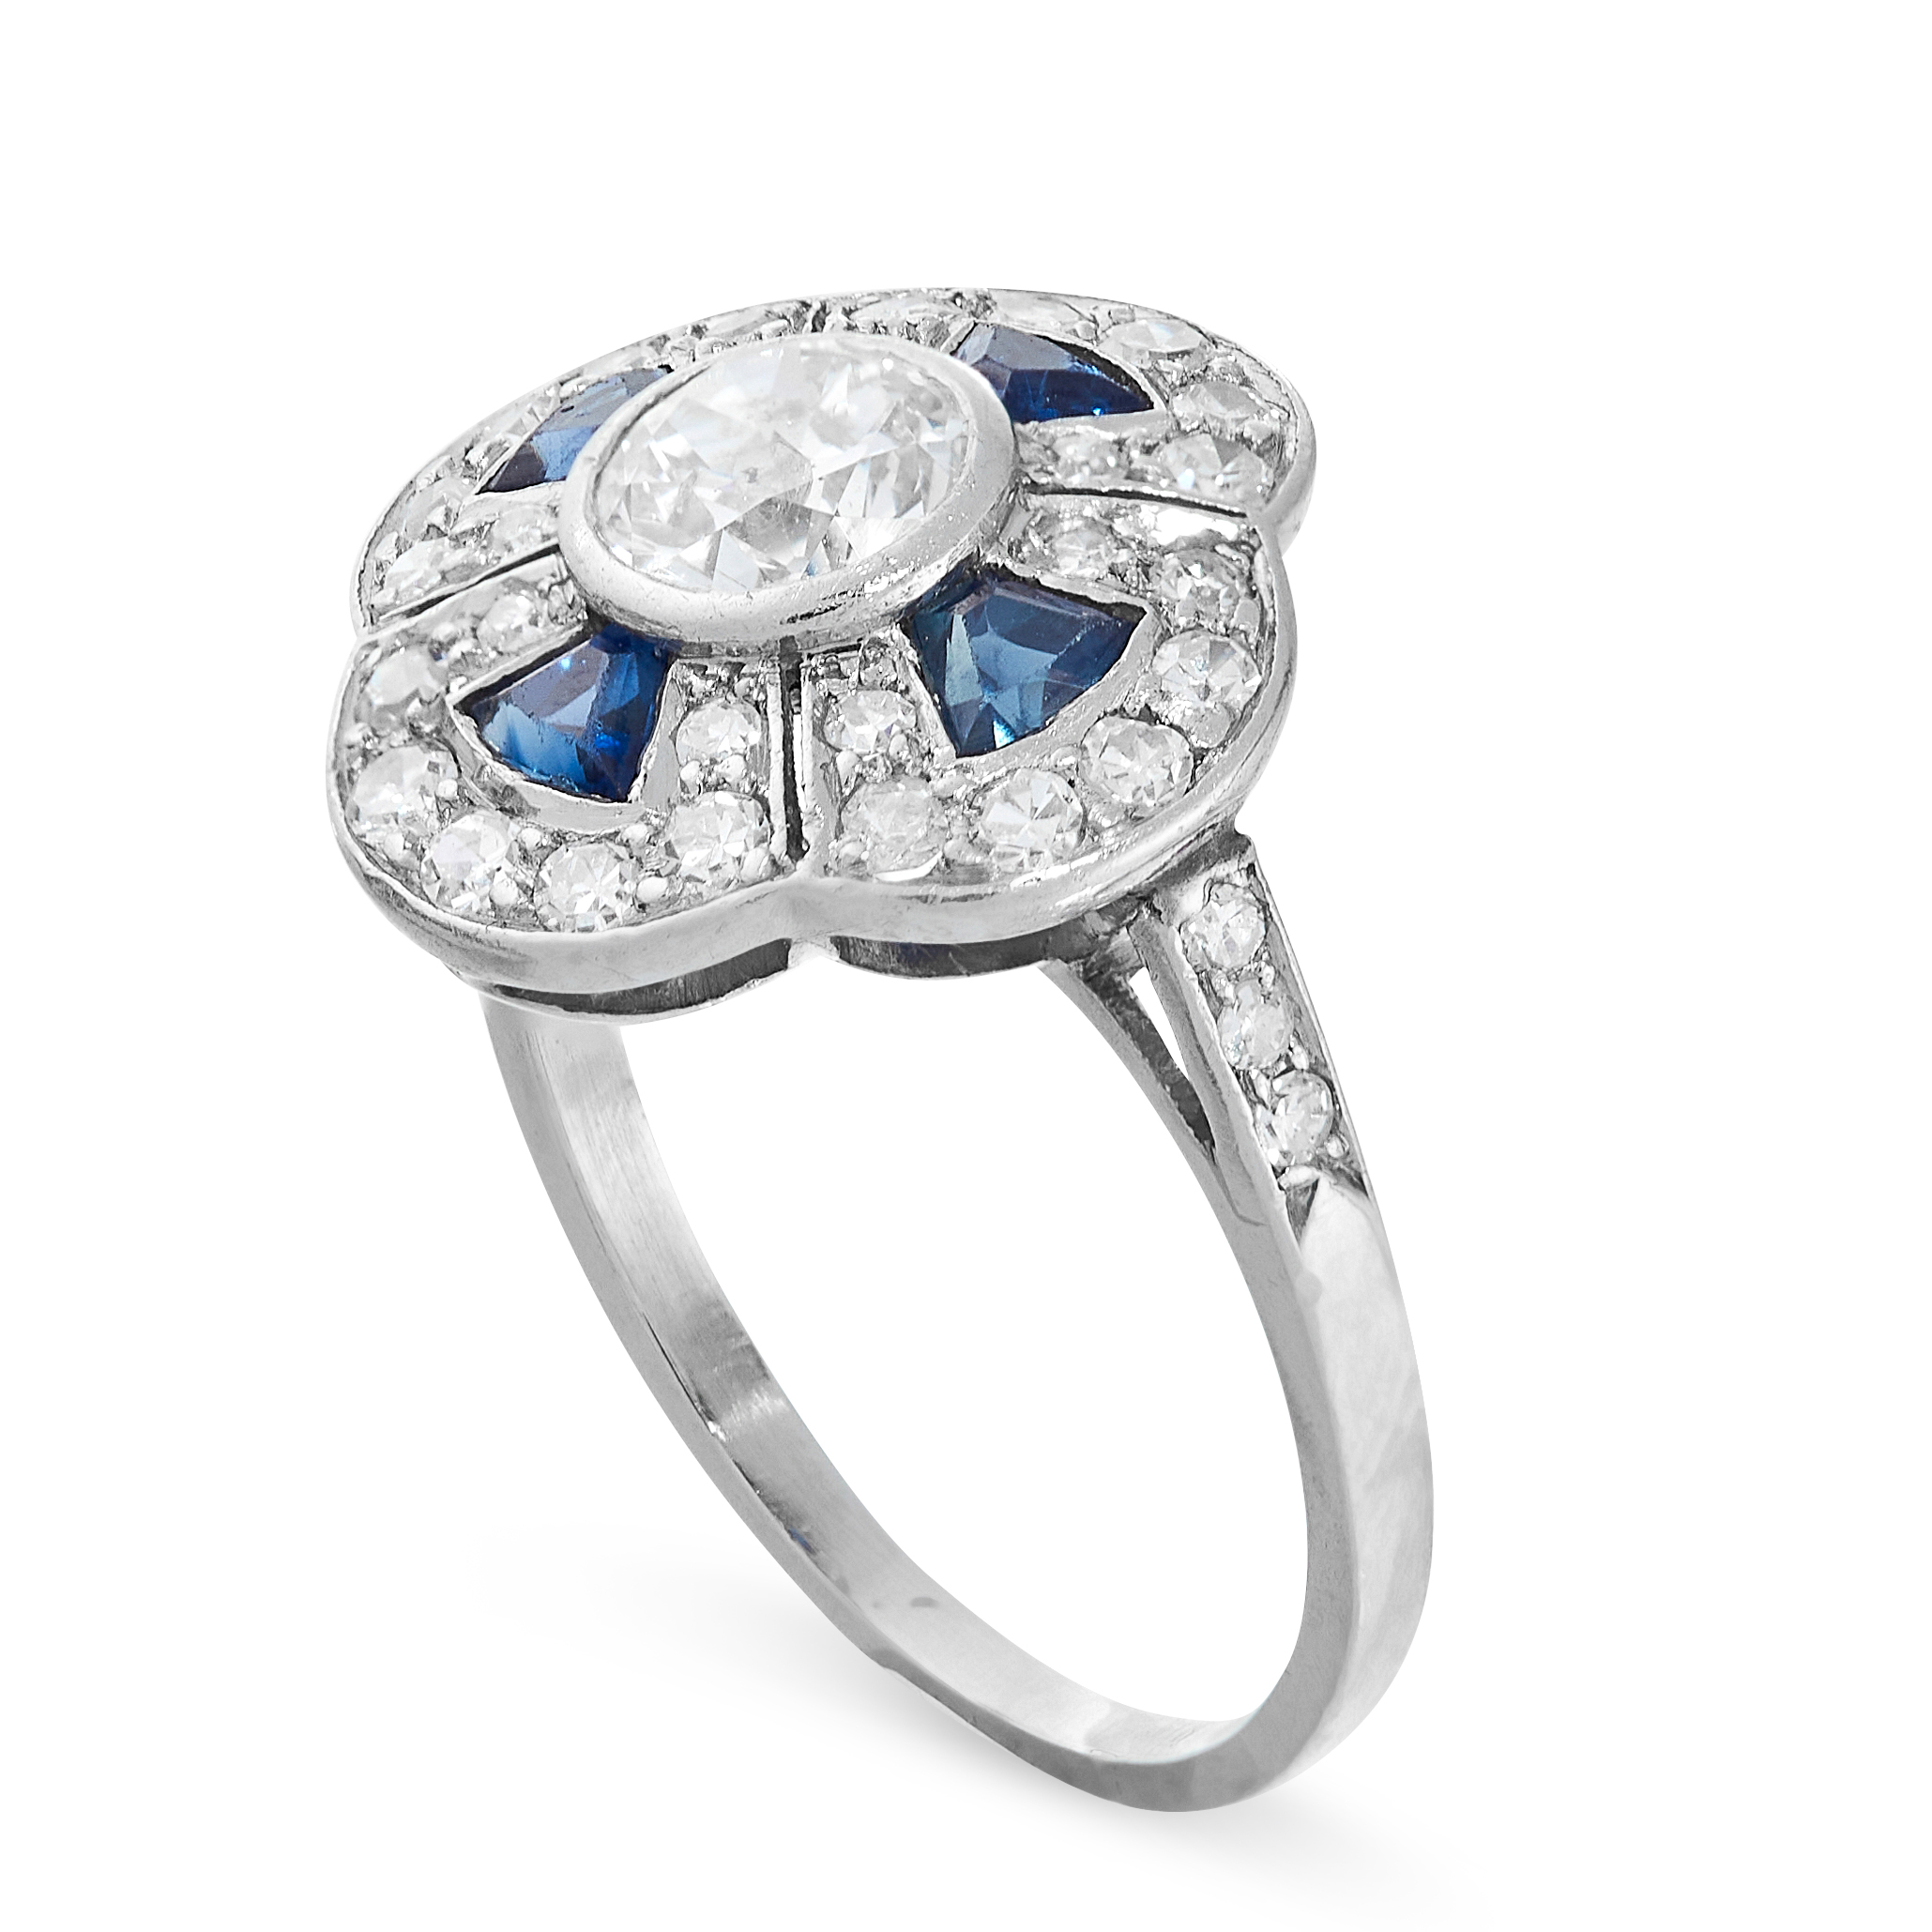 SAPPHIRE AND DIAMOND RING in cluster form, set with an old cut diamond of 0.50 carats in a border of - Image 2 of 2